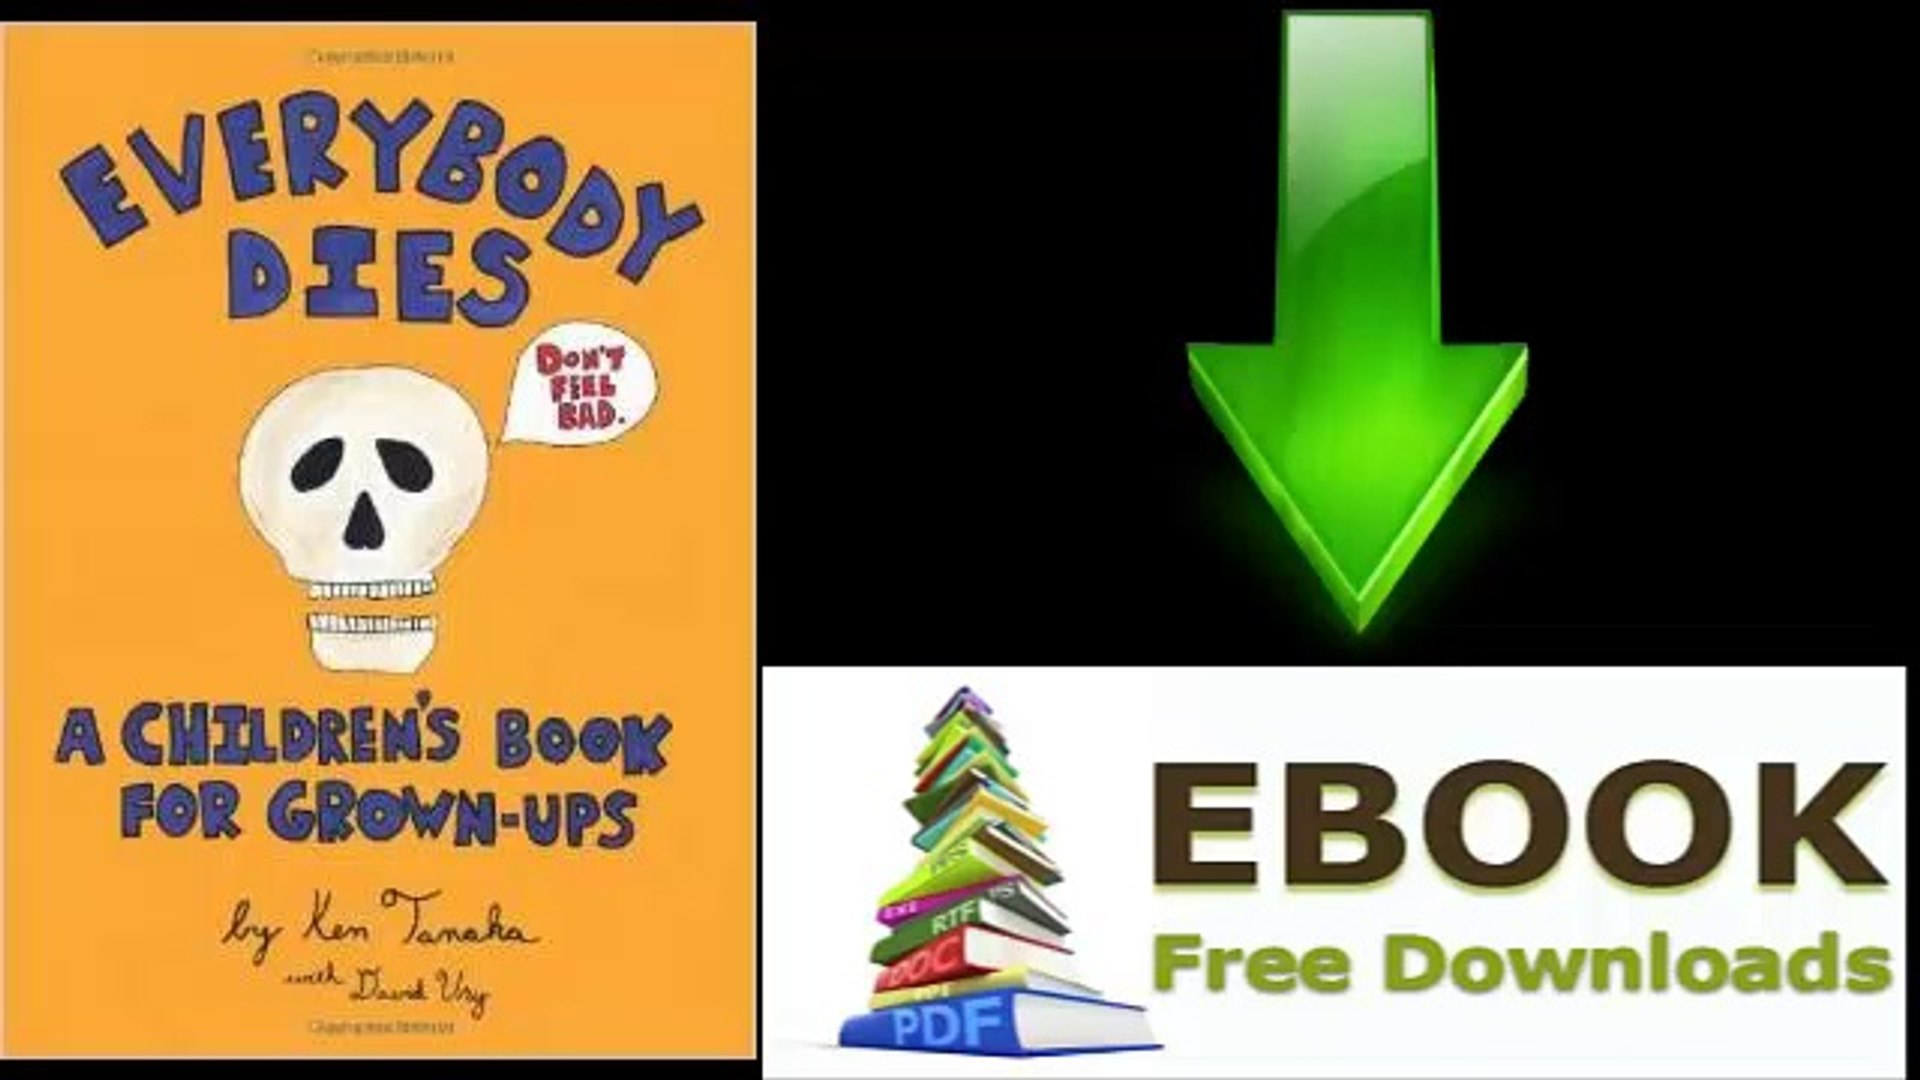 [Download eBook] Everybody Dies: A Children's Book for Grown-ups by Ken  Tanaka